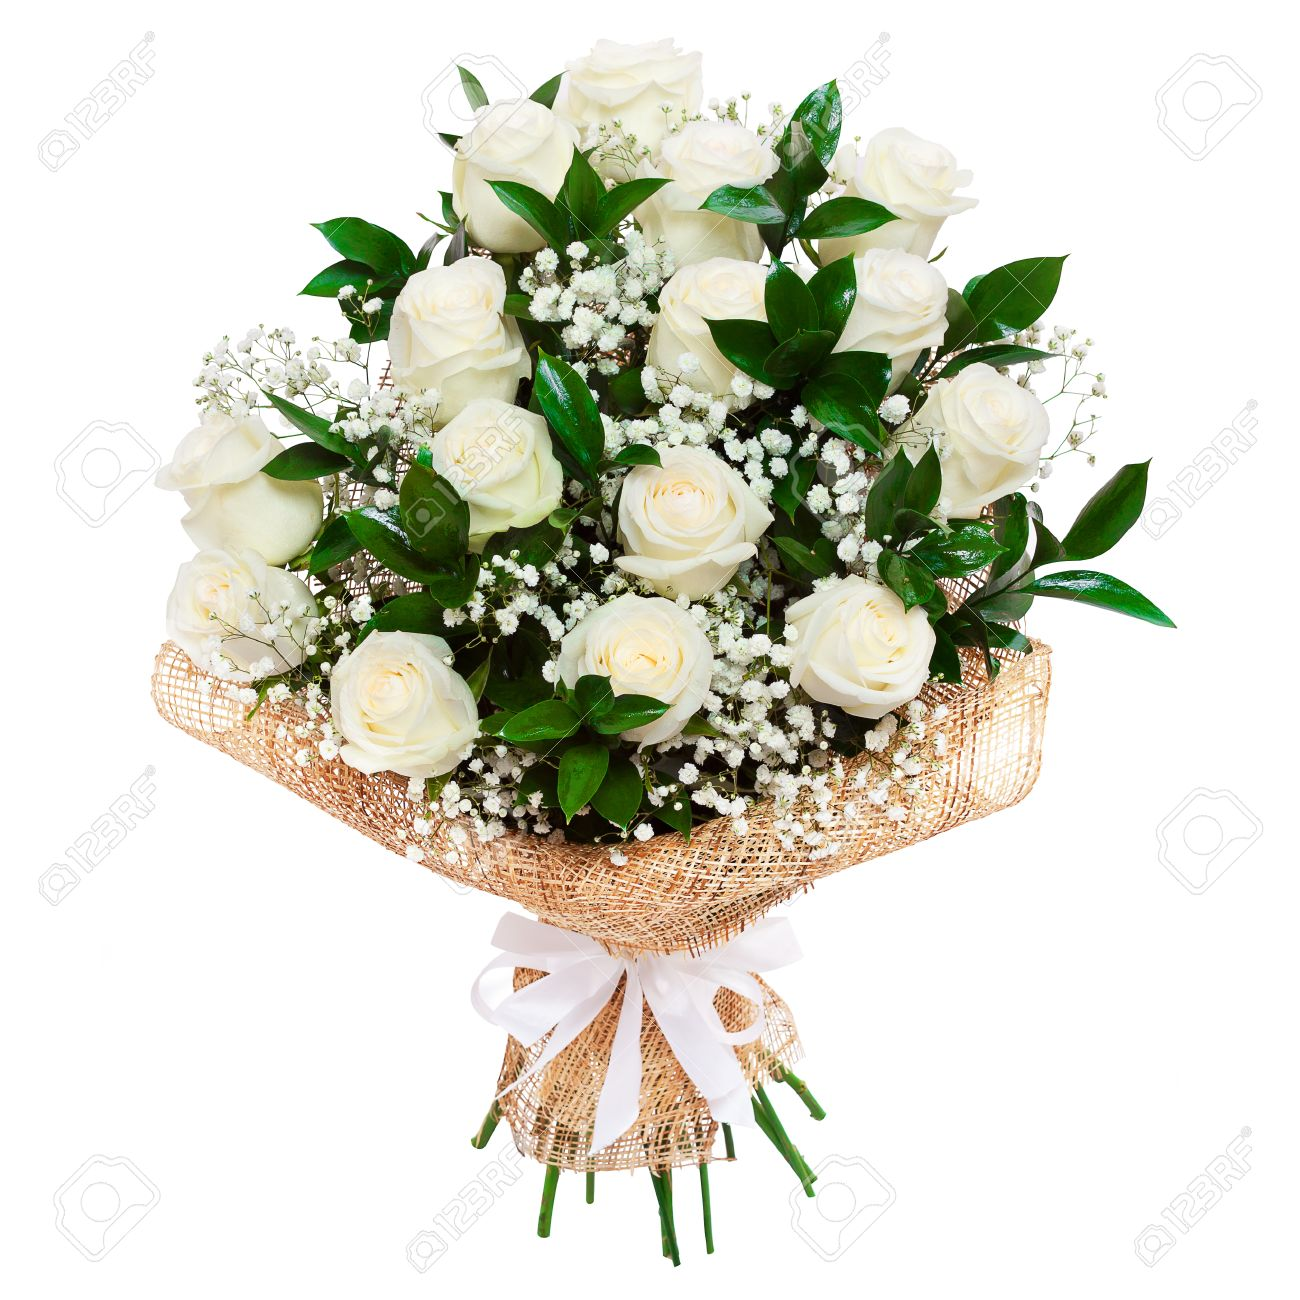 Funeral flowers stock photos royalty free funeral flowers images bouquet of beautiful white roses isolated on white a great gift to a woman for izmirmasajfo